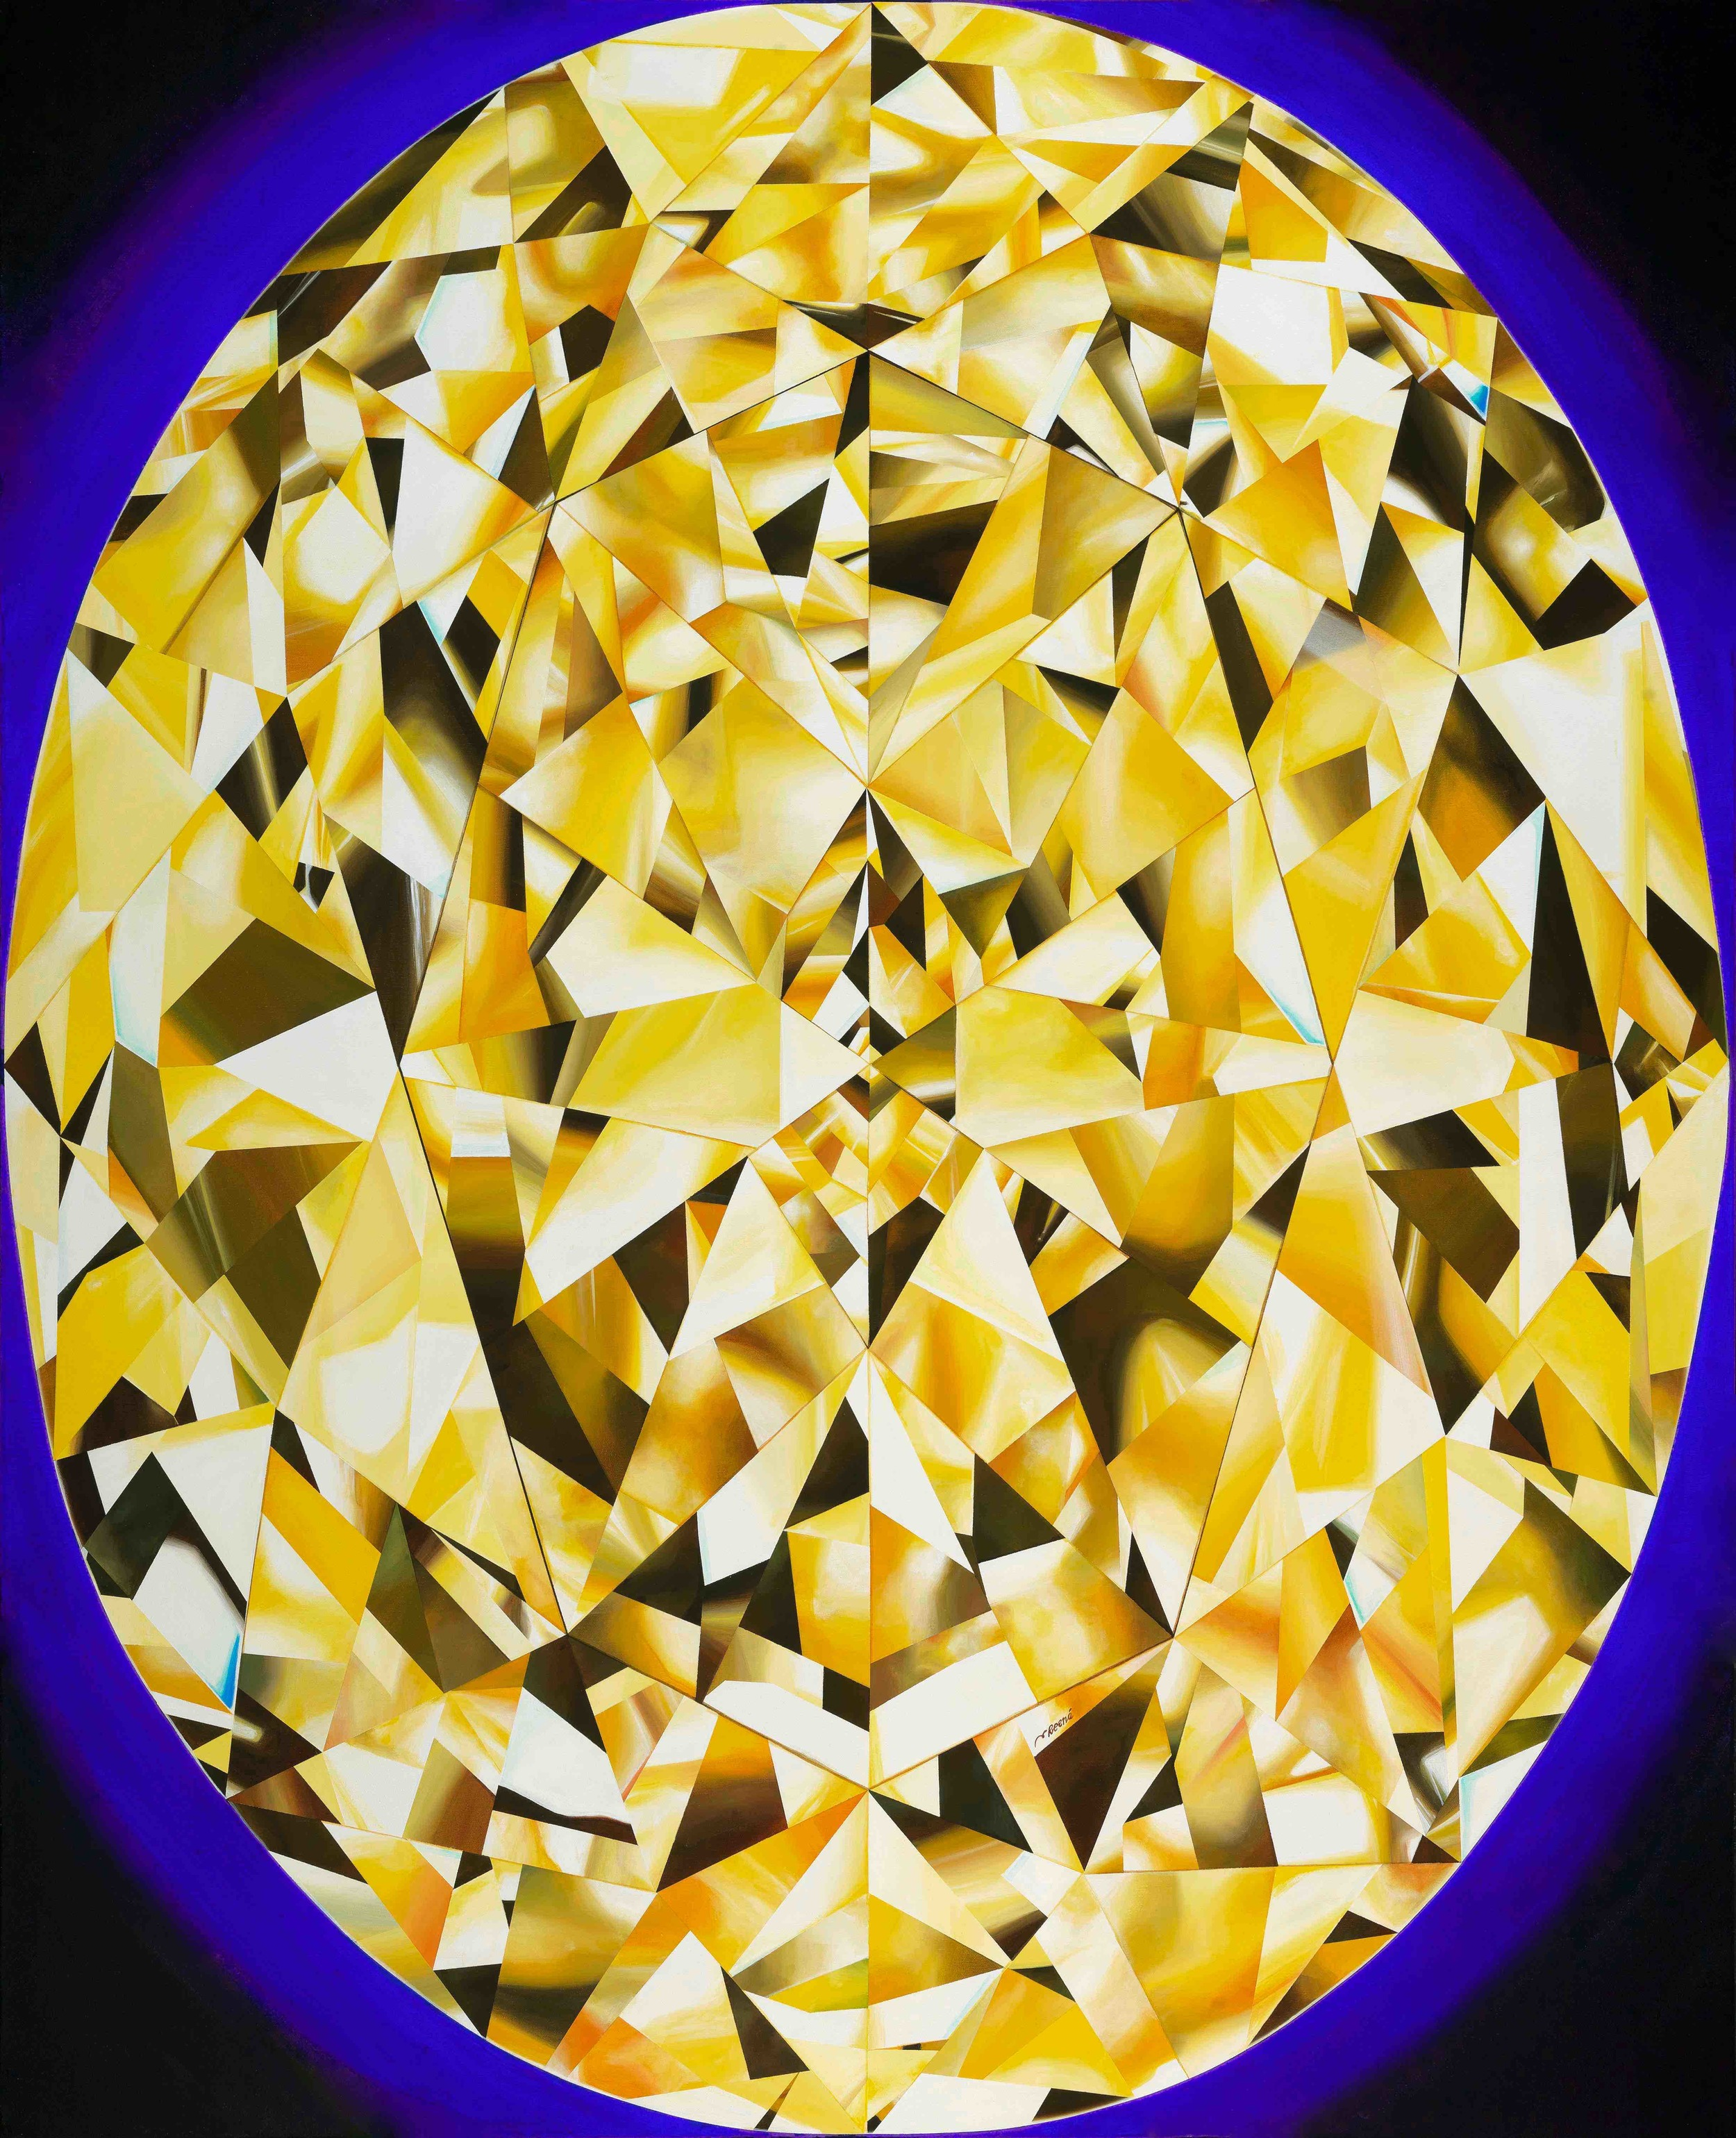 'The Portrait of Luminosity' - Portrait of an Oval Cut Yellow Diamond 60 x 48 inches. Acrylic on Canvas. ©Reena Ahluwalia